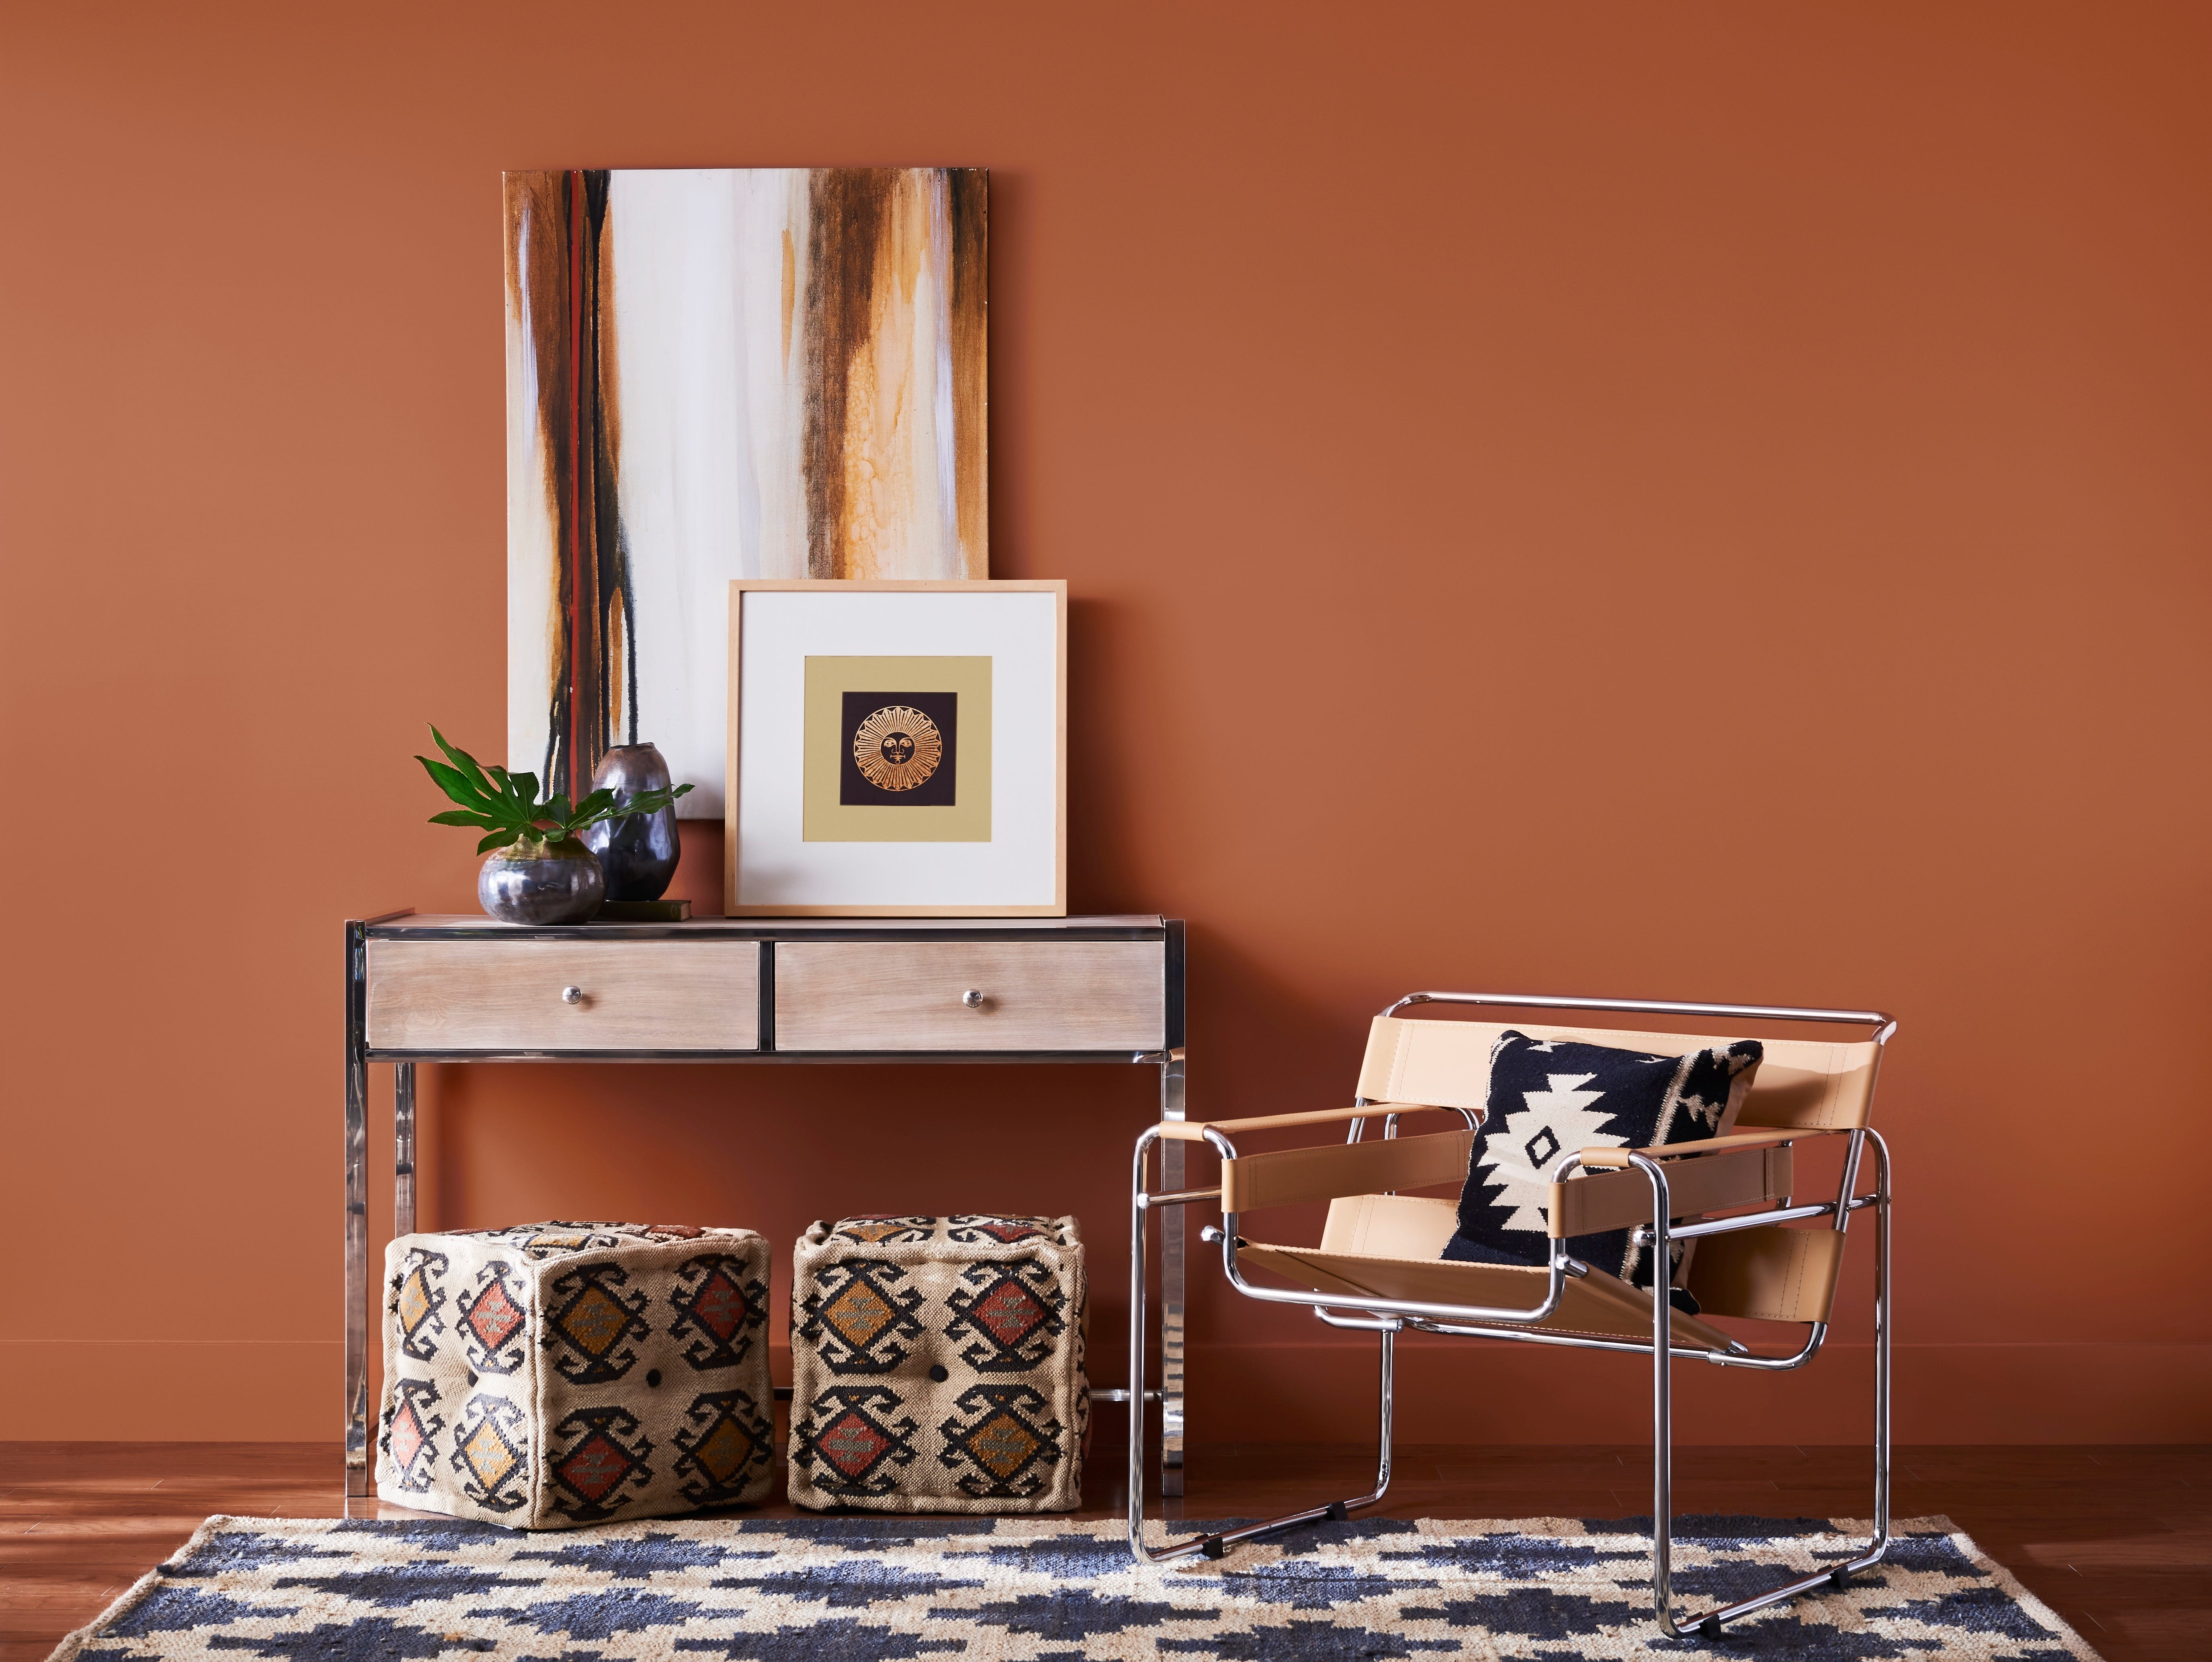 IN: Cavern Clay, Sherwin-Williams' 2019 Color of the Year.